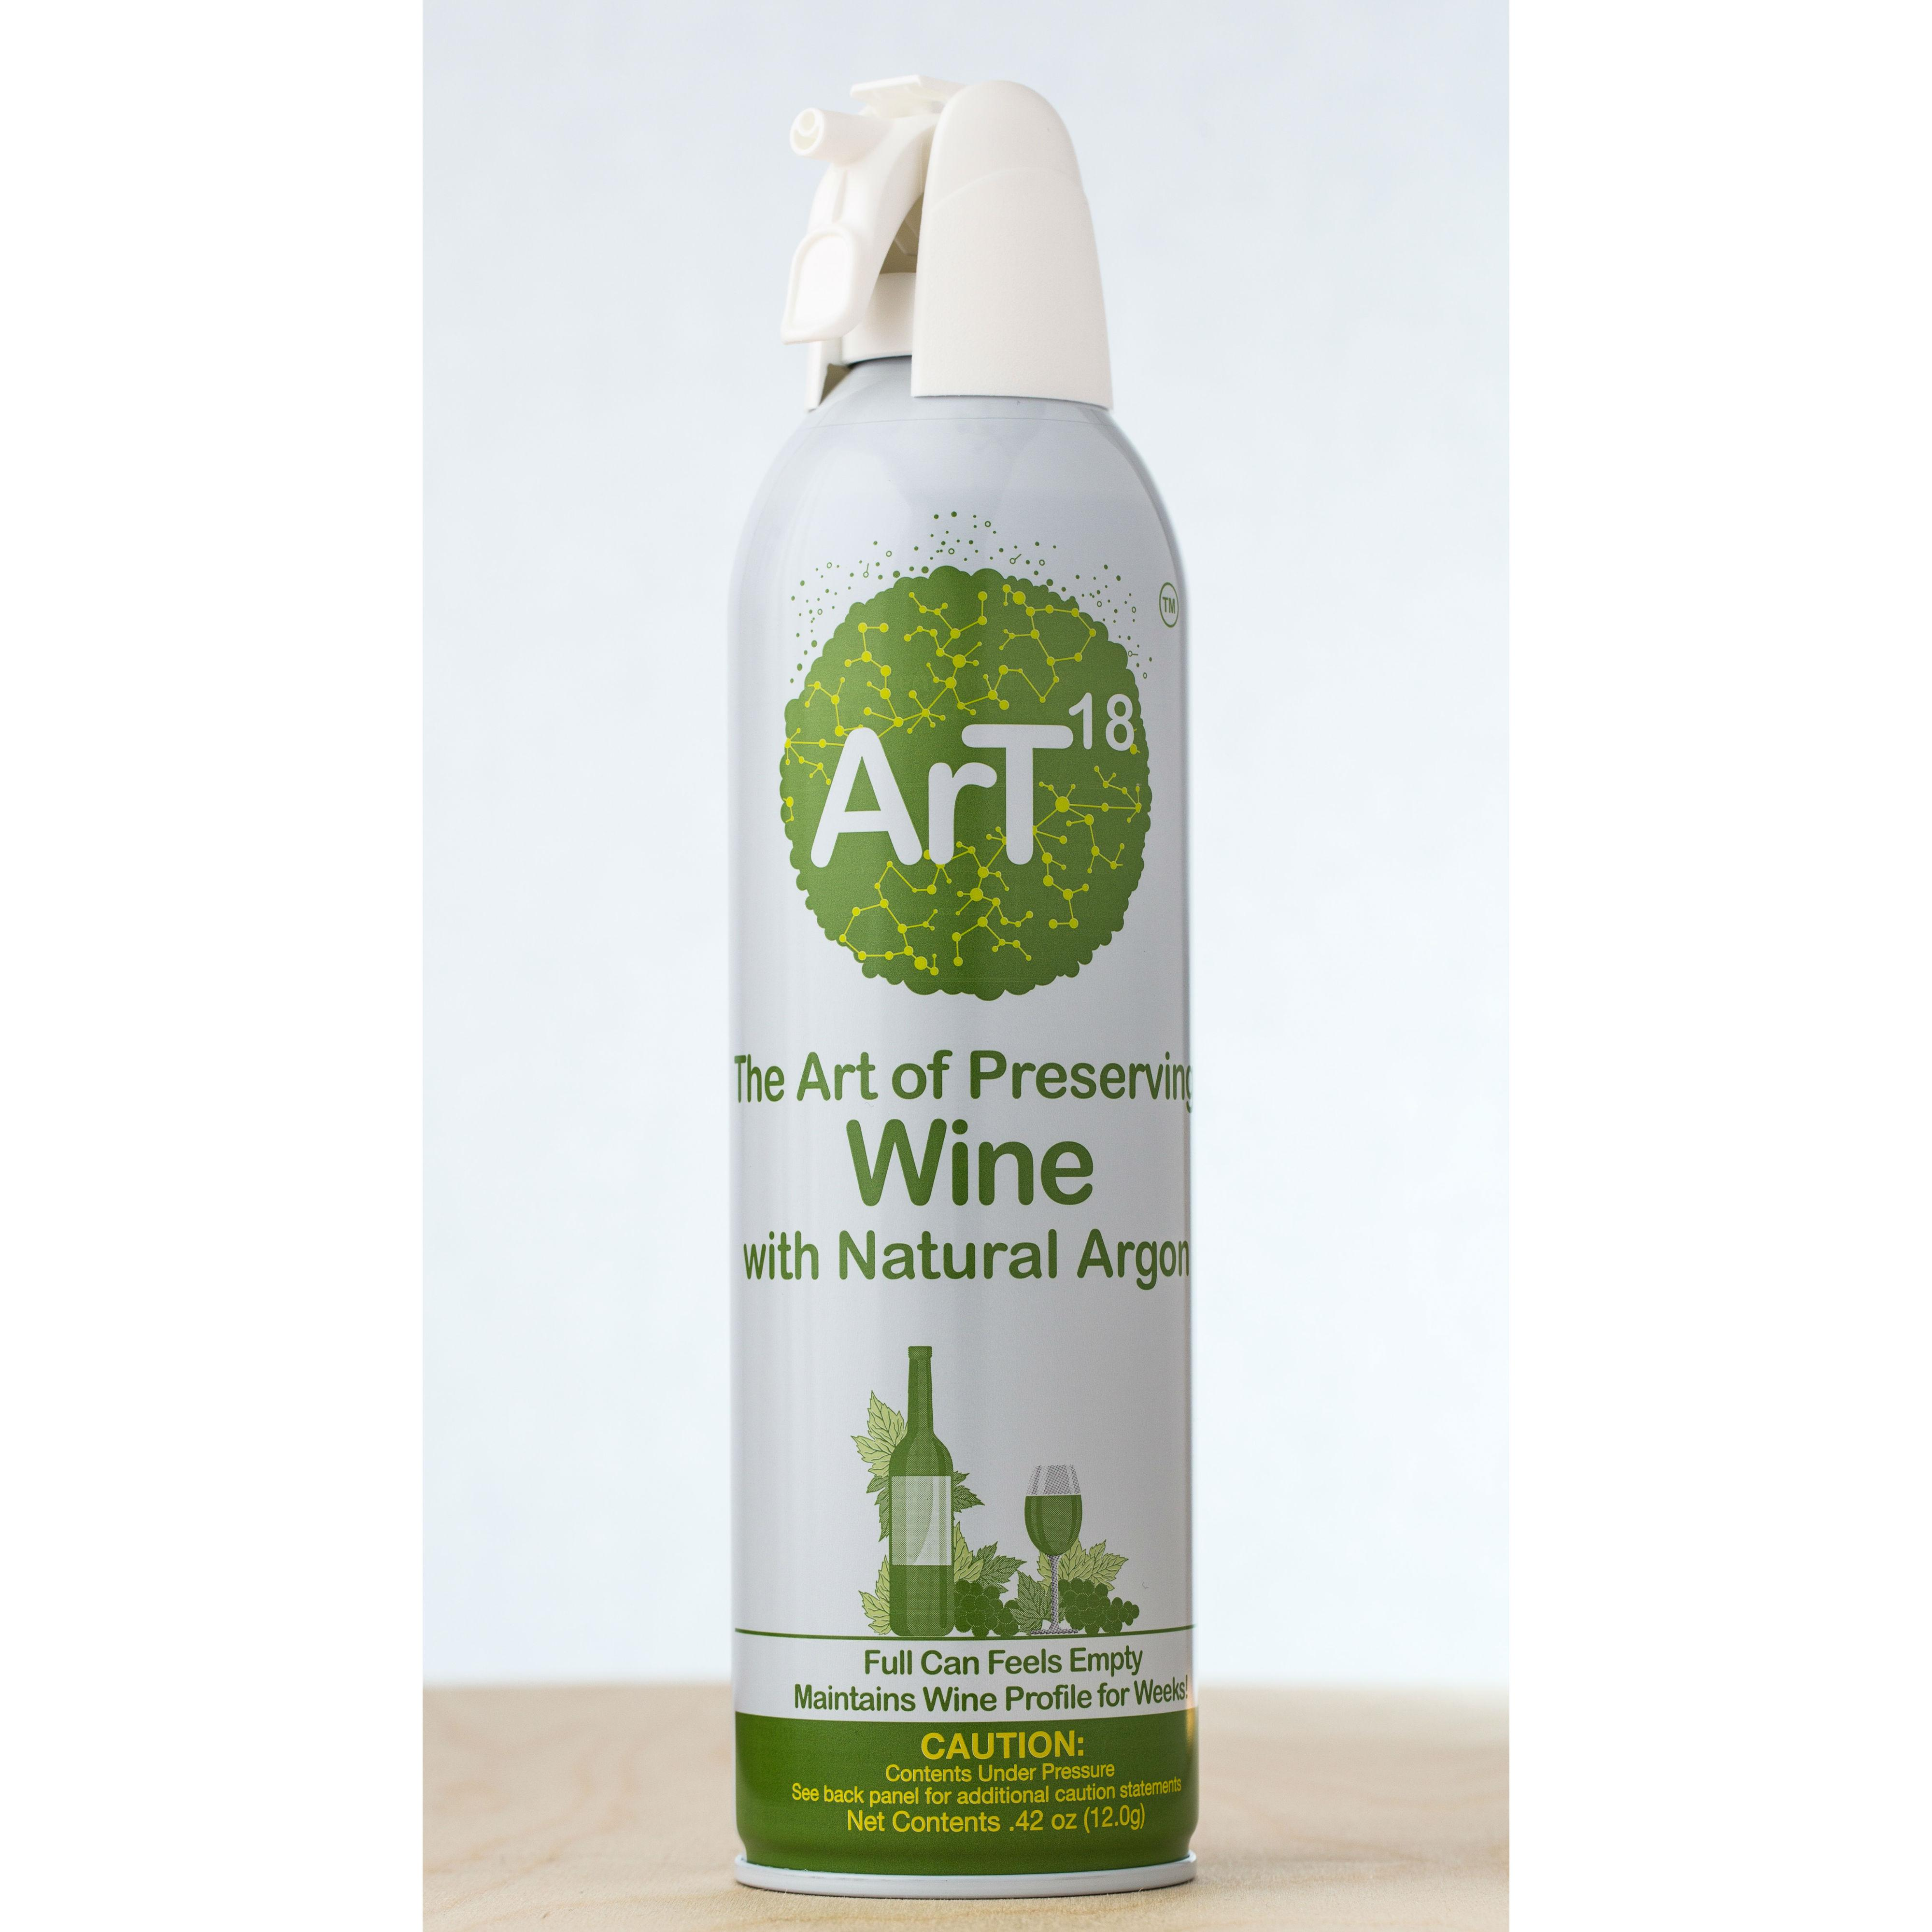 ArT Wine Preserver - Product